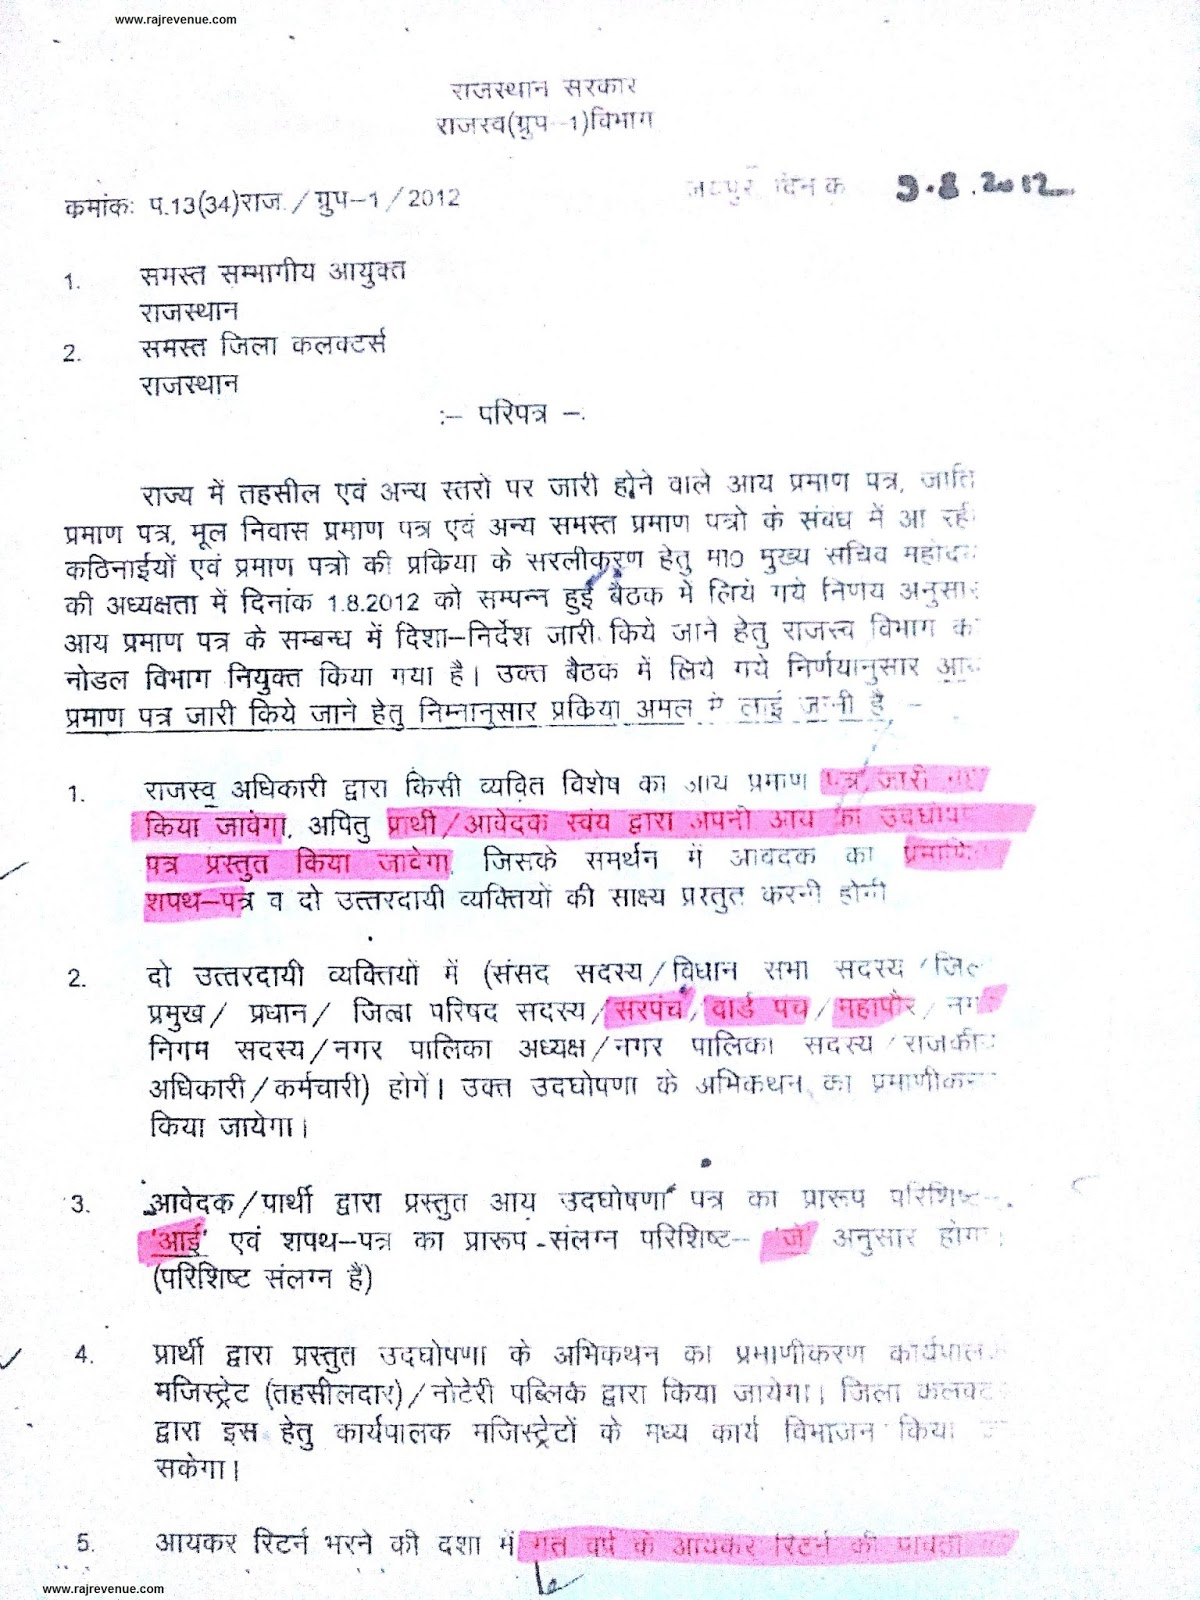 Rajasthan revenue department acts rules circulars and rajasthan revenue department acts rules circulars and notifications paripatra or circular no p 1334 rajgroup 12012 date 09082012 by rajasthan yelopaper Image collections